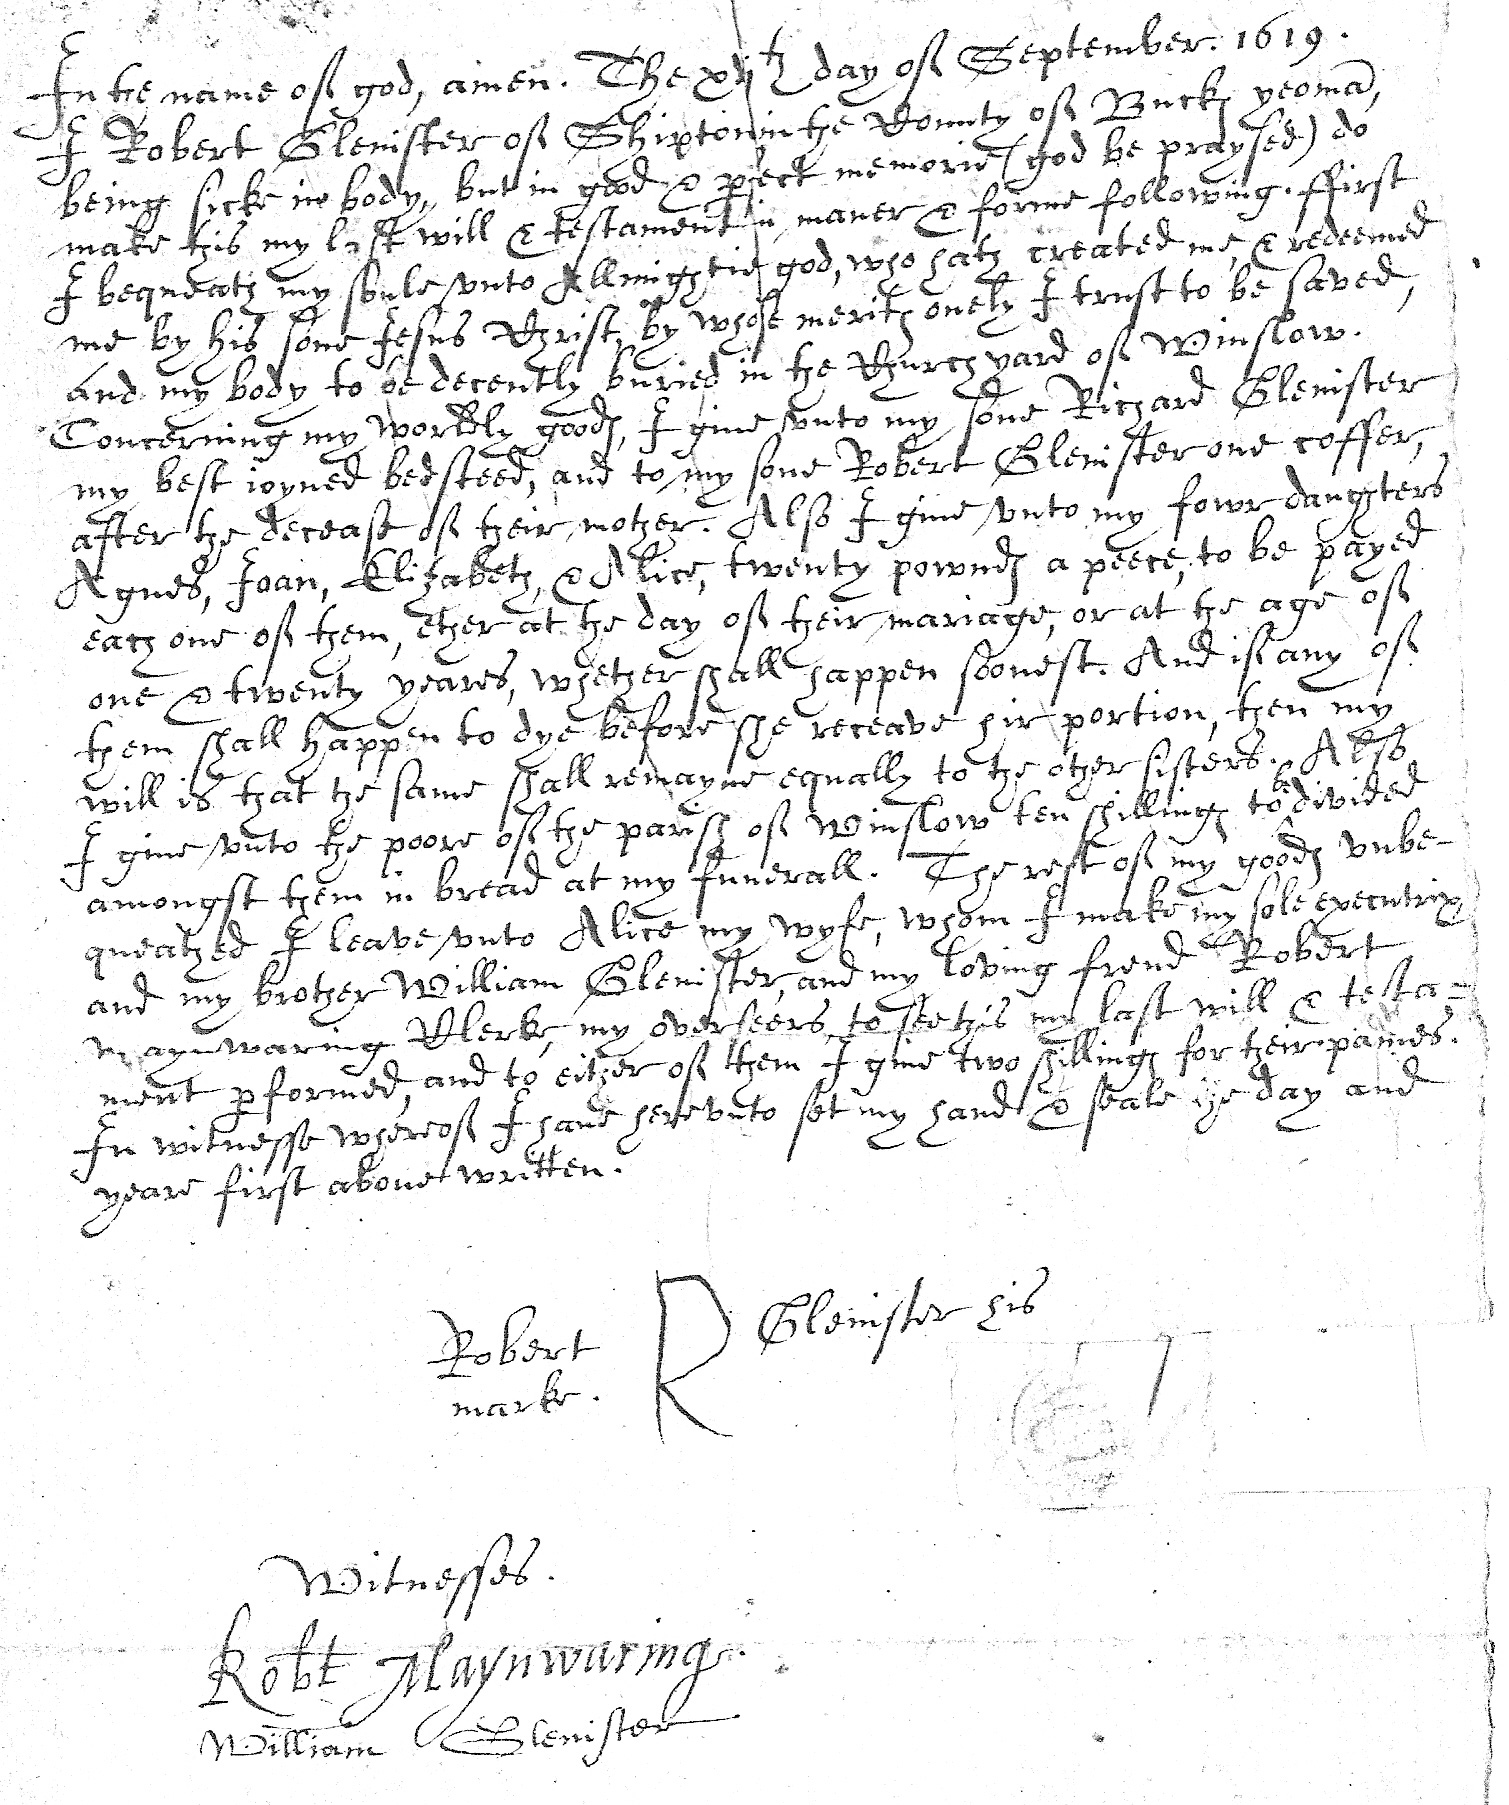 Will of Robert Glenister